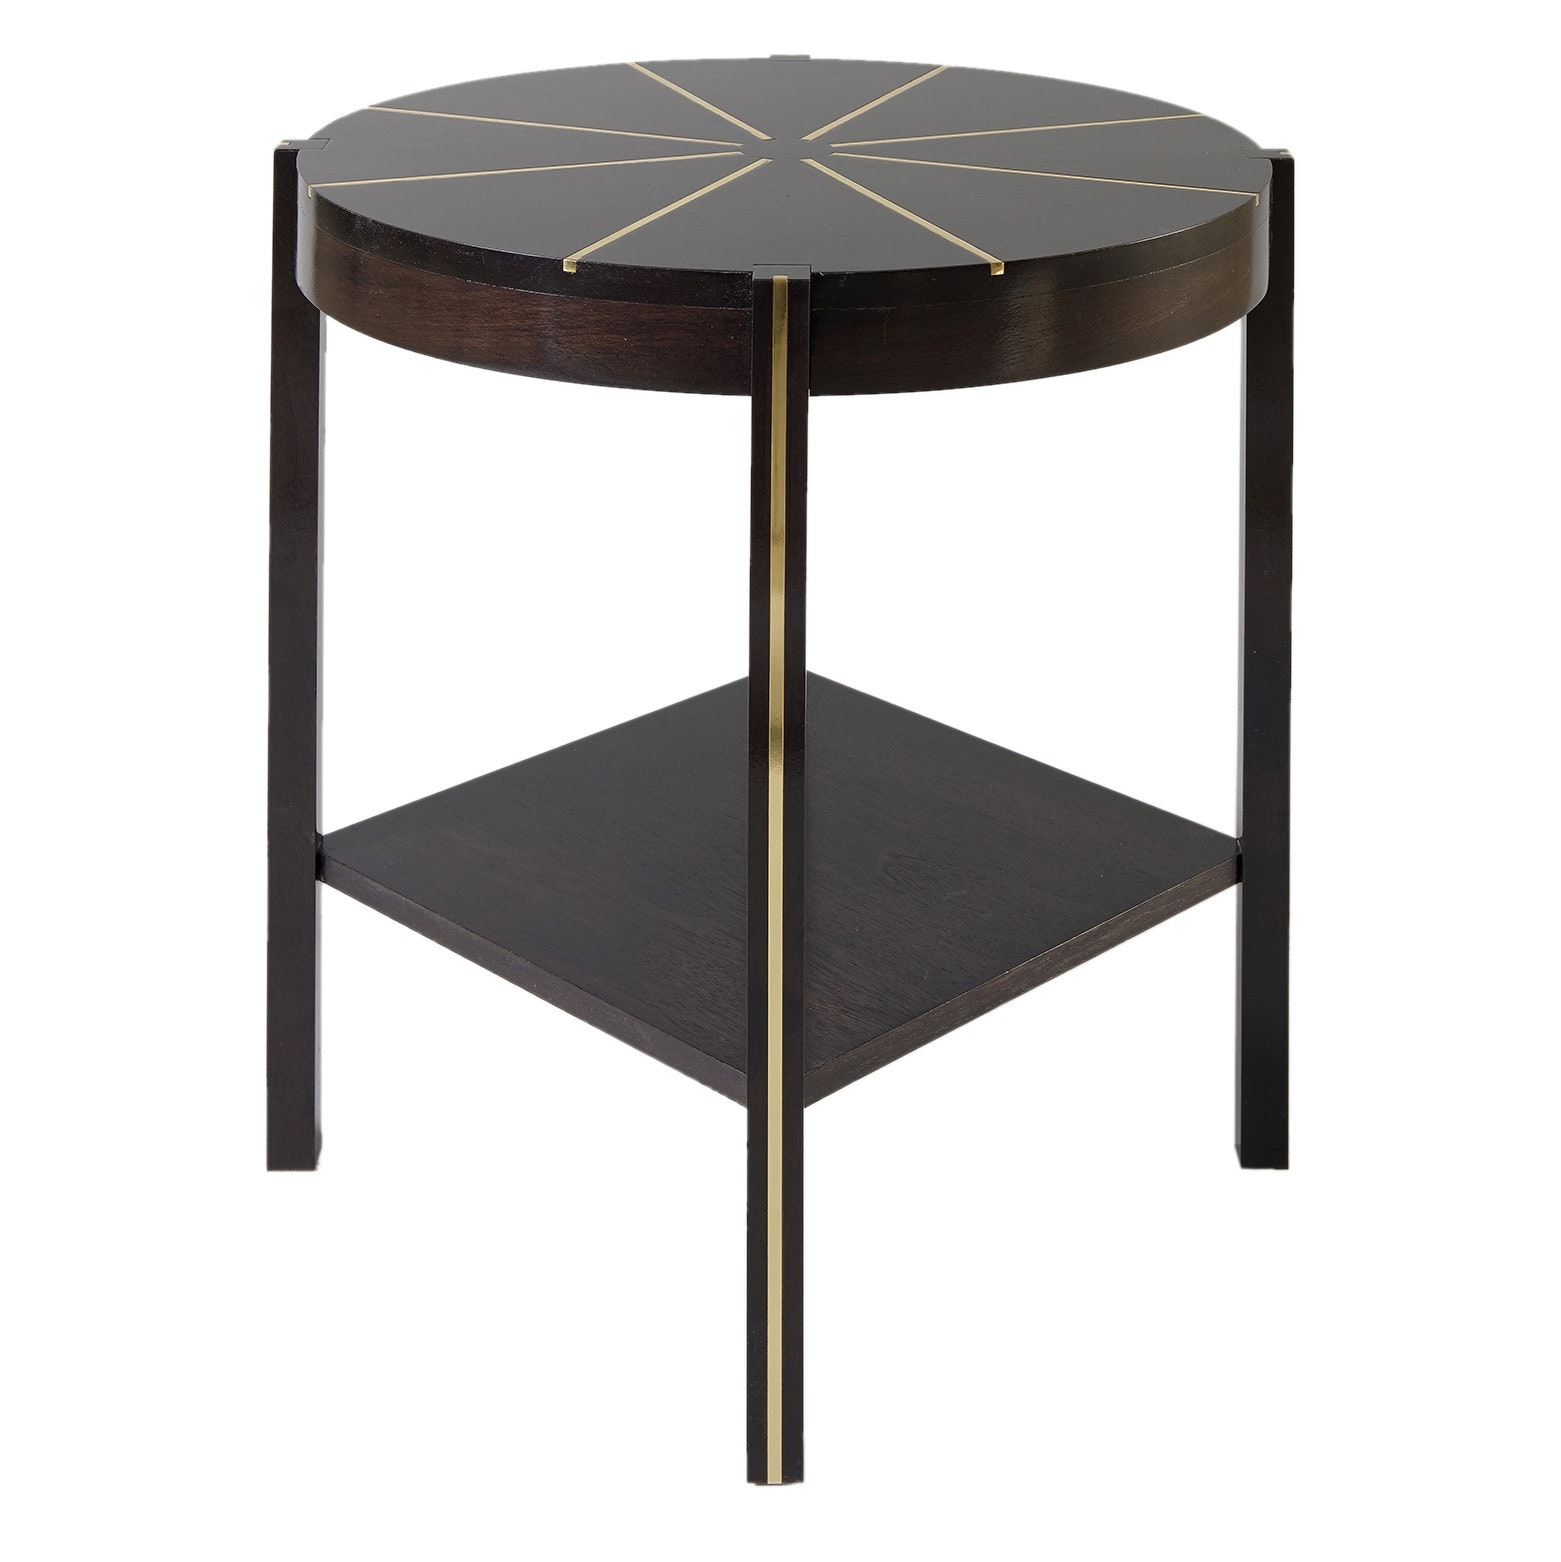 the path side table contemporary transitional art deco mid century paula grace designs signature furniture tables metal wood outdoor modern end dering hall living room lounge